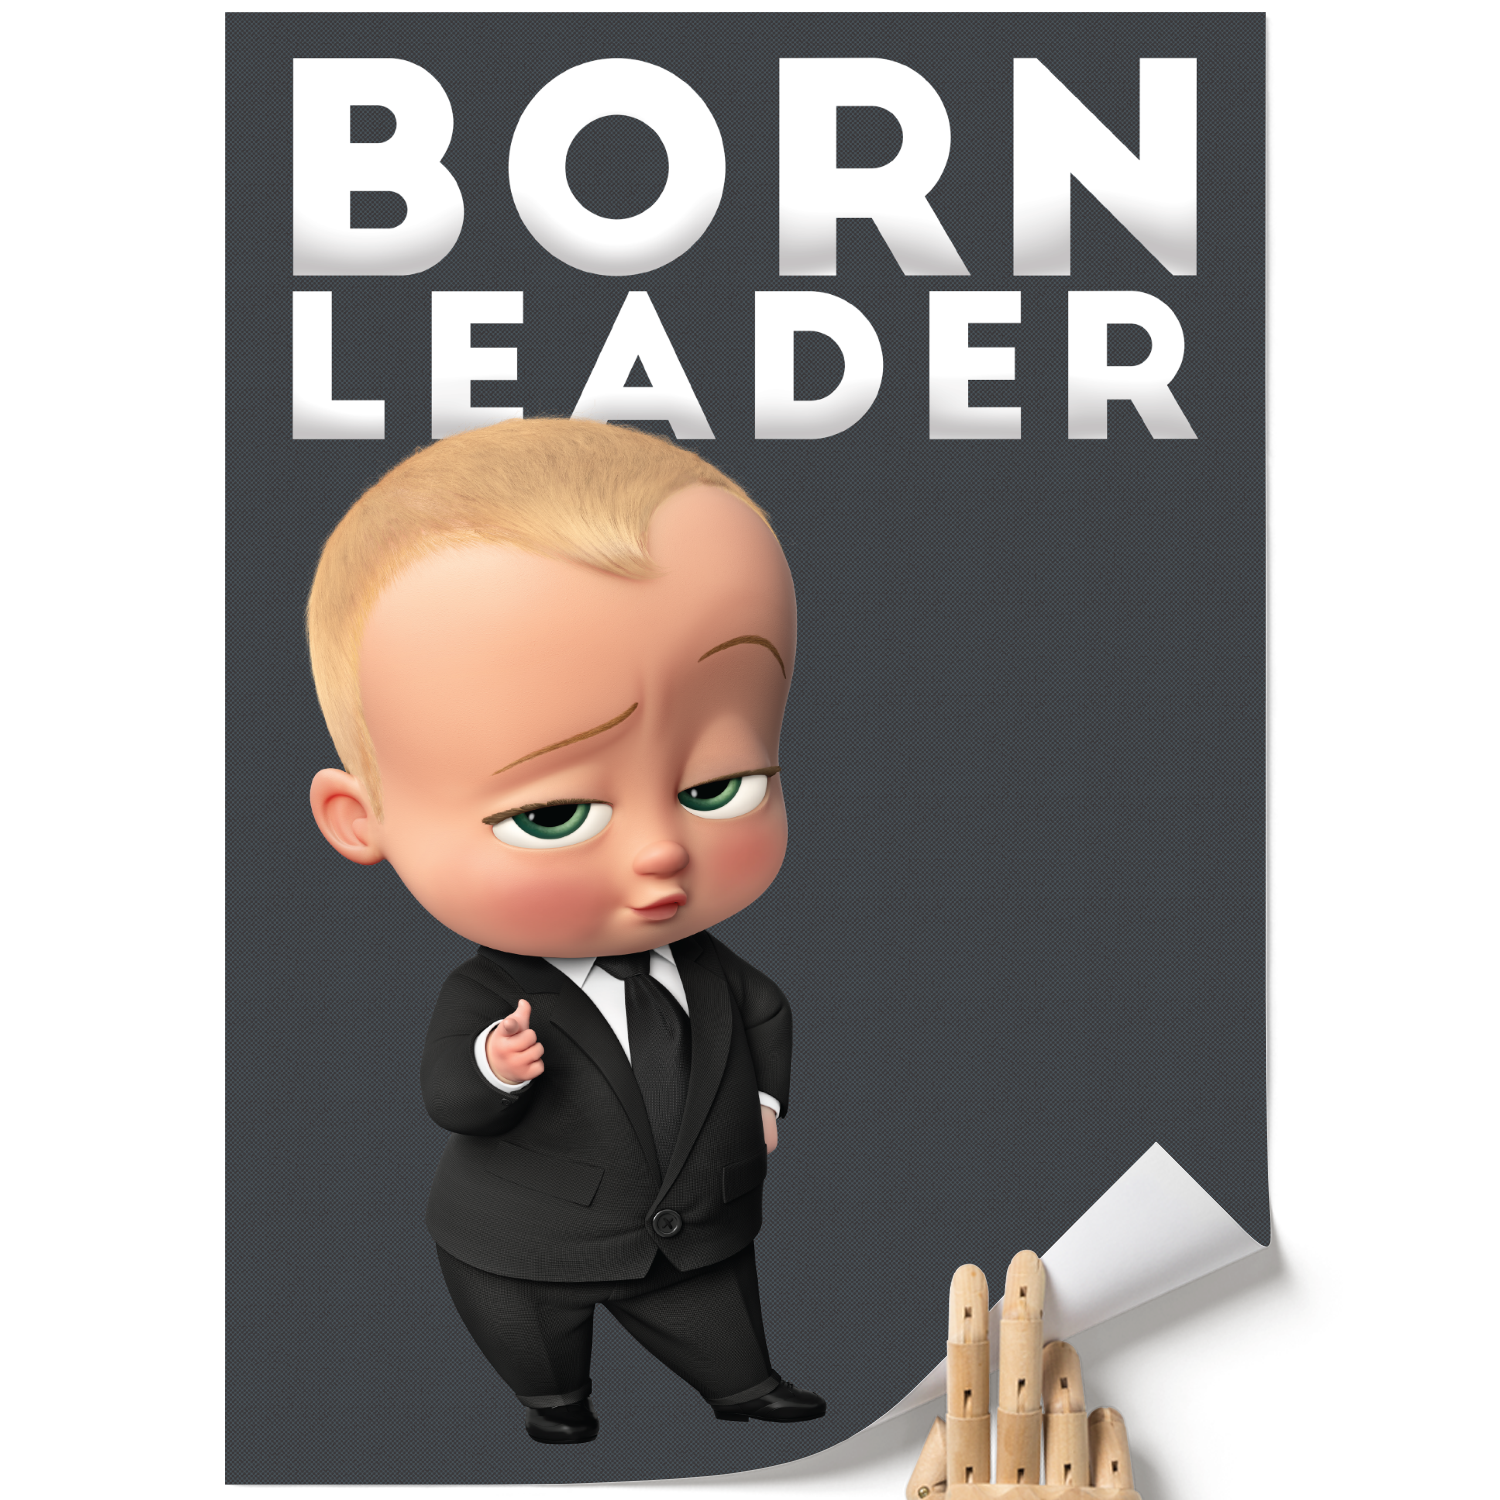 A3 Poster - Born Leader - Boss Baby